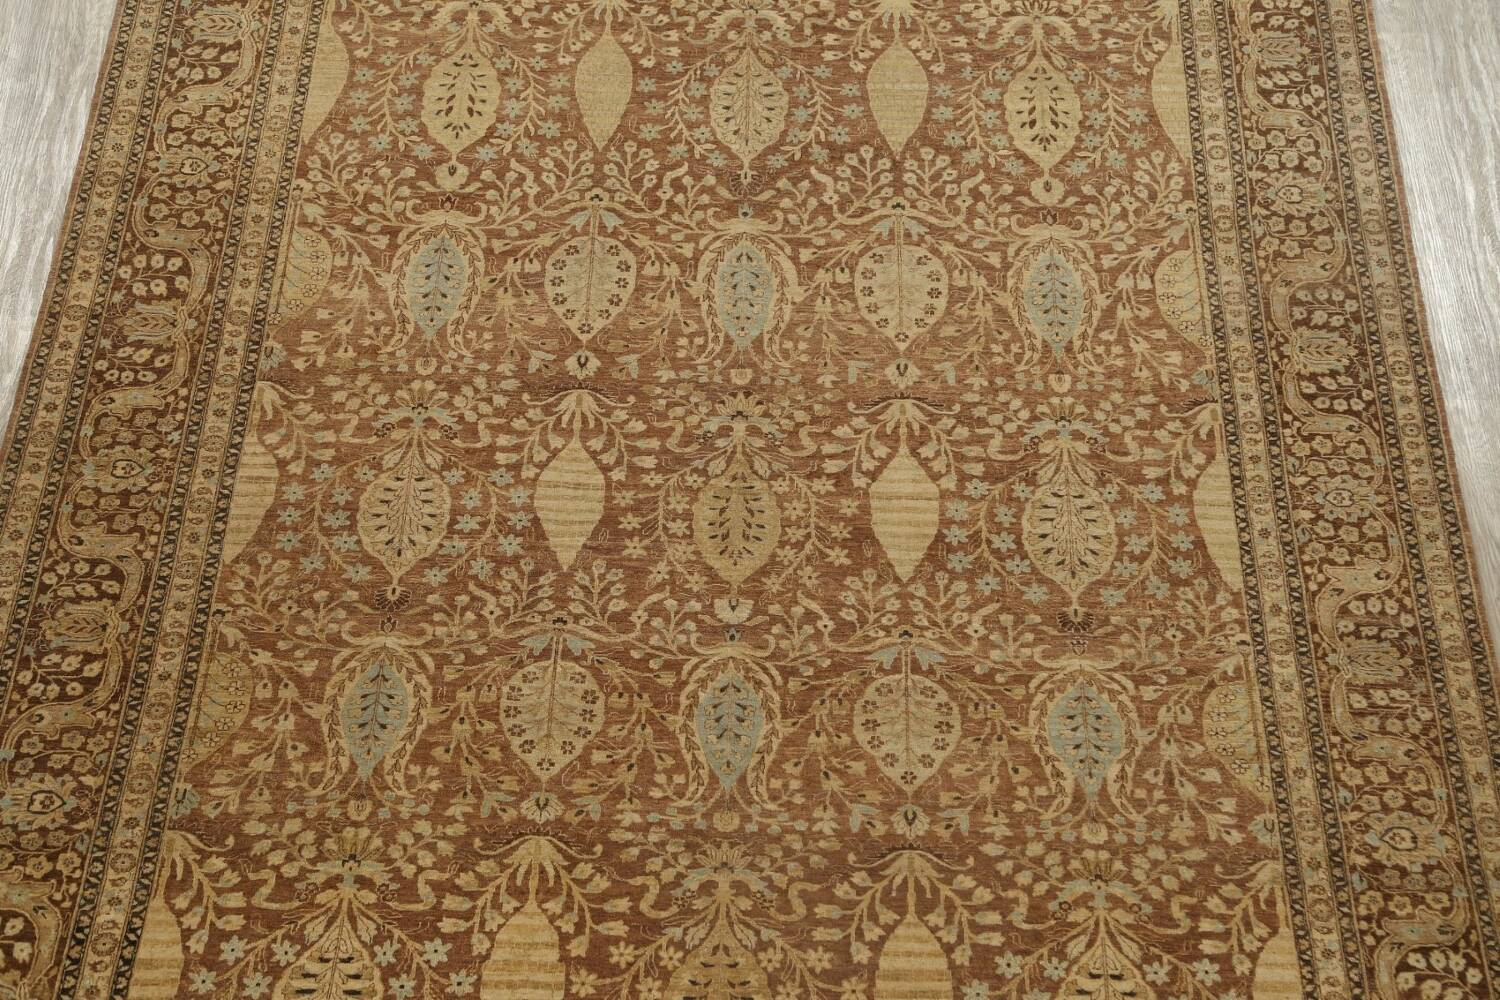 100% Vegetable Dye Floral Kashan Oriental Area Rug 9x12 image 3